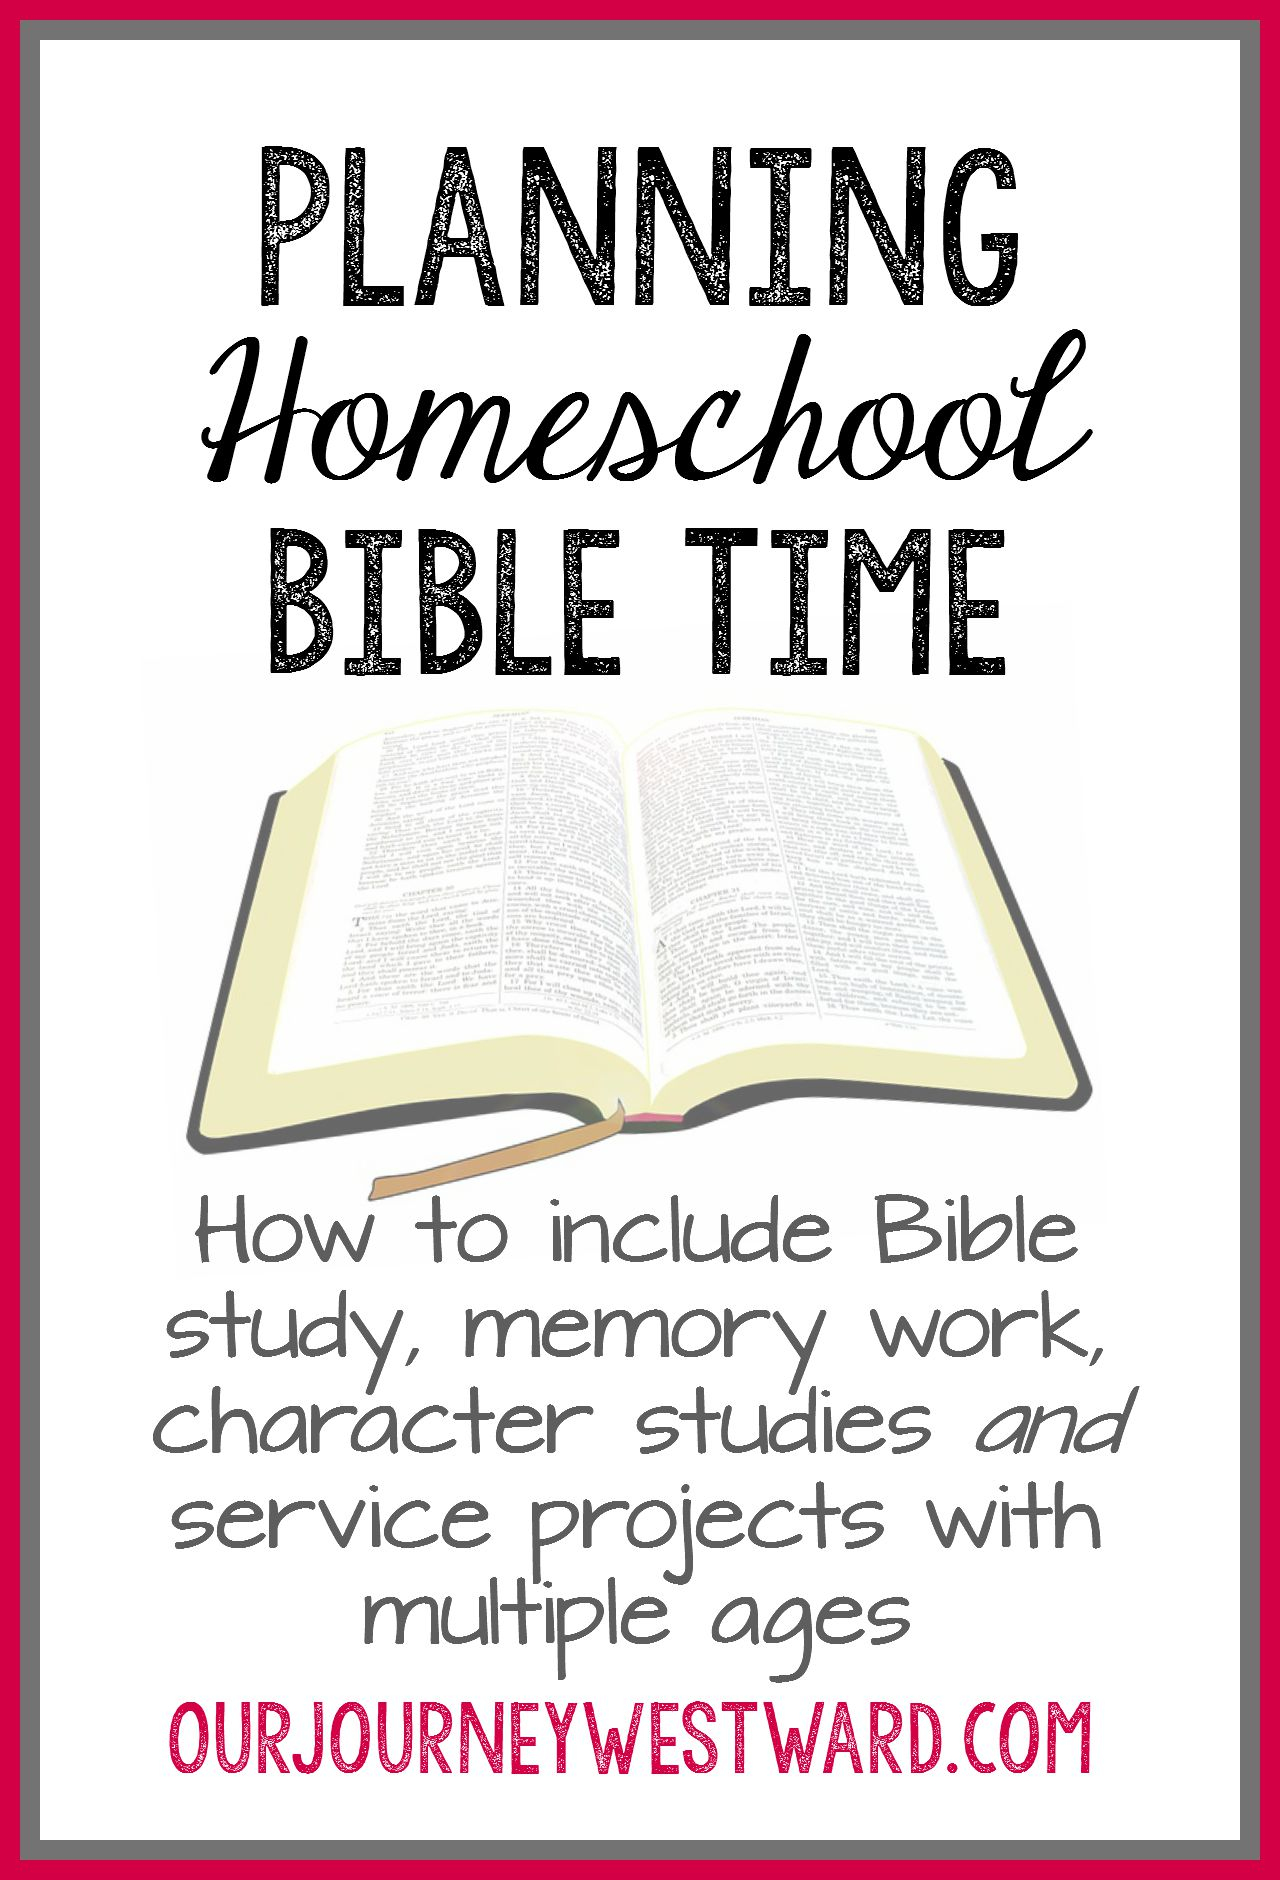 Planning Homeschool Bible Time